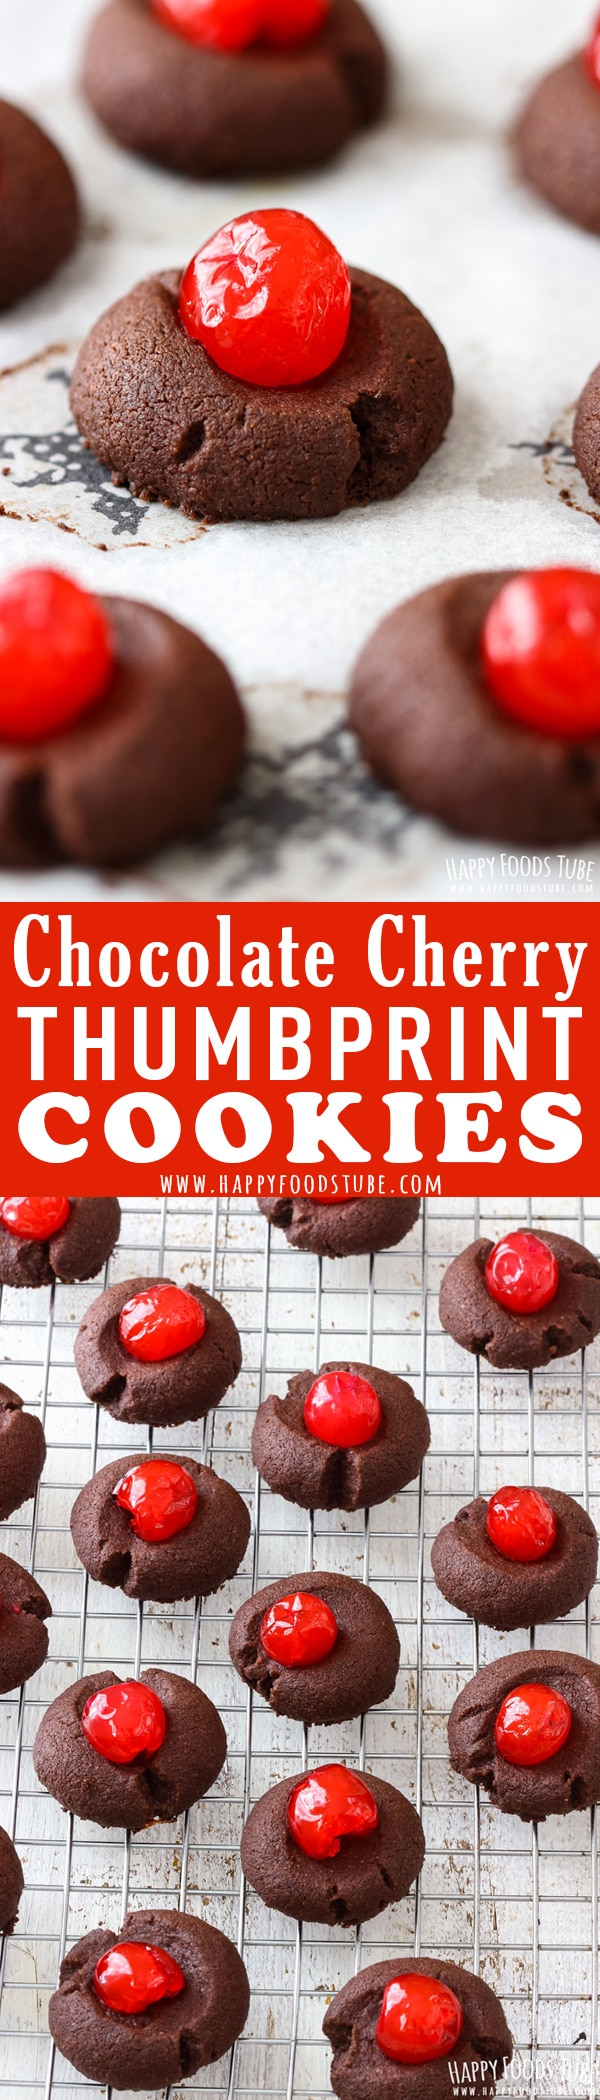 Chocolate Cherry Thumbprint Cookies - Happy Foods Tube